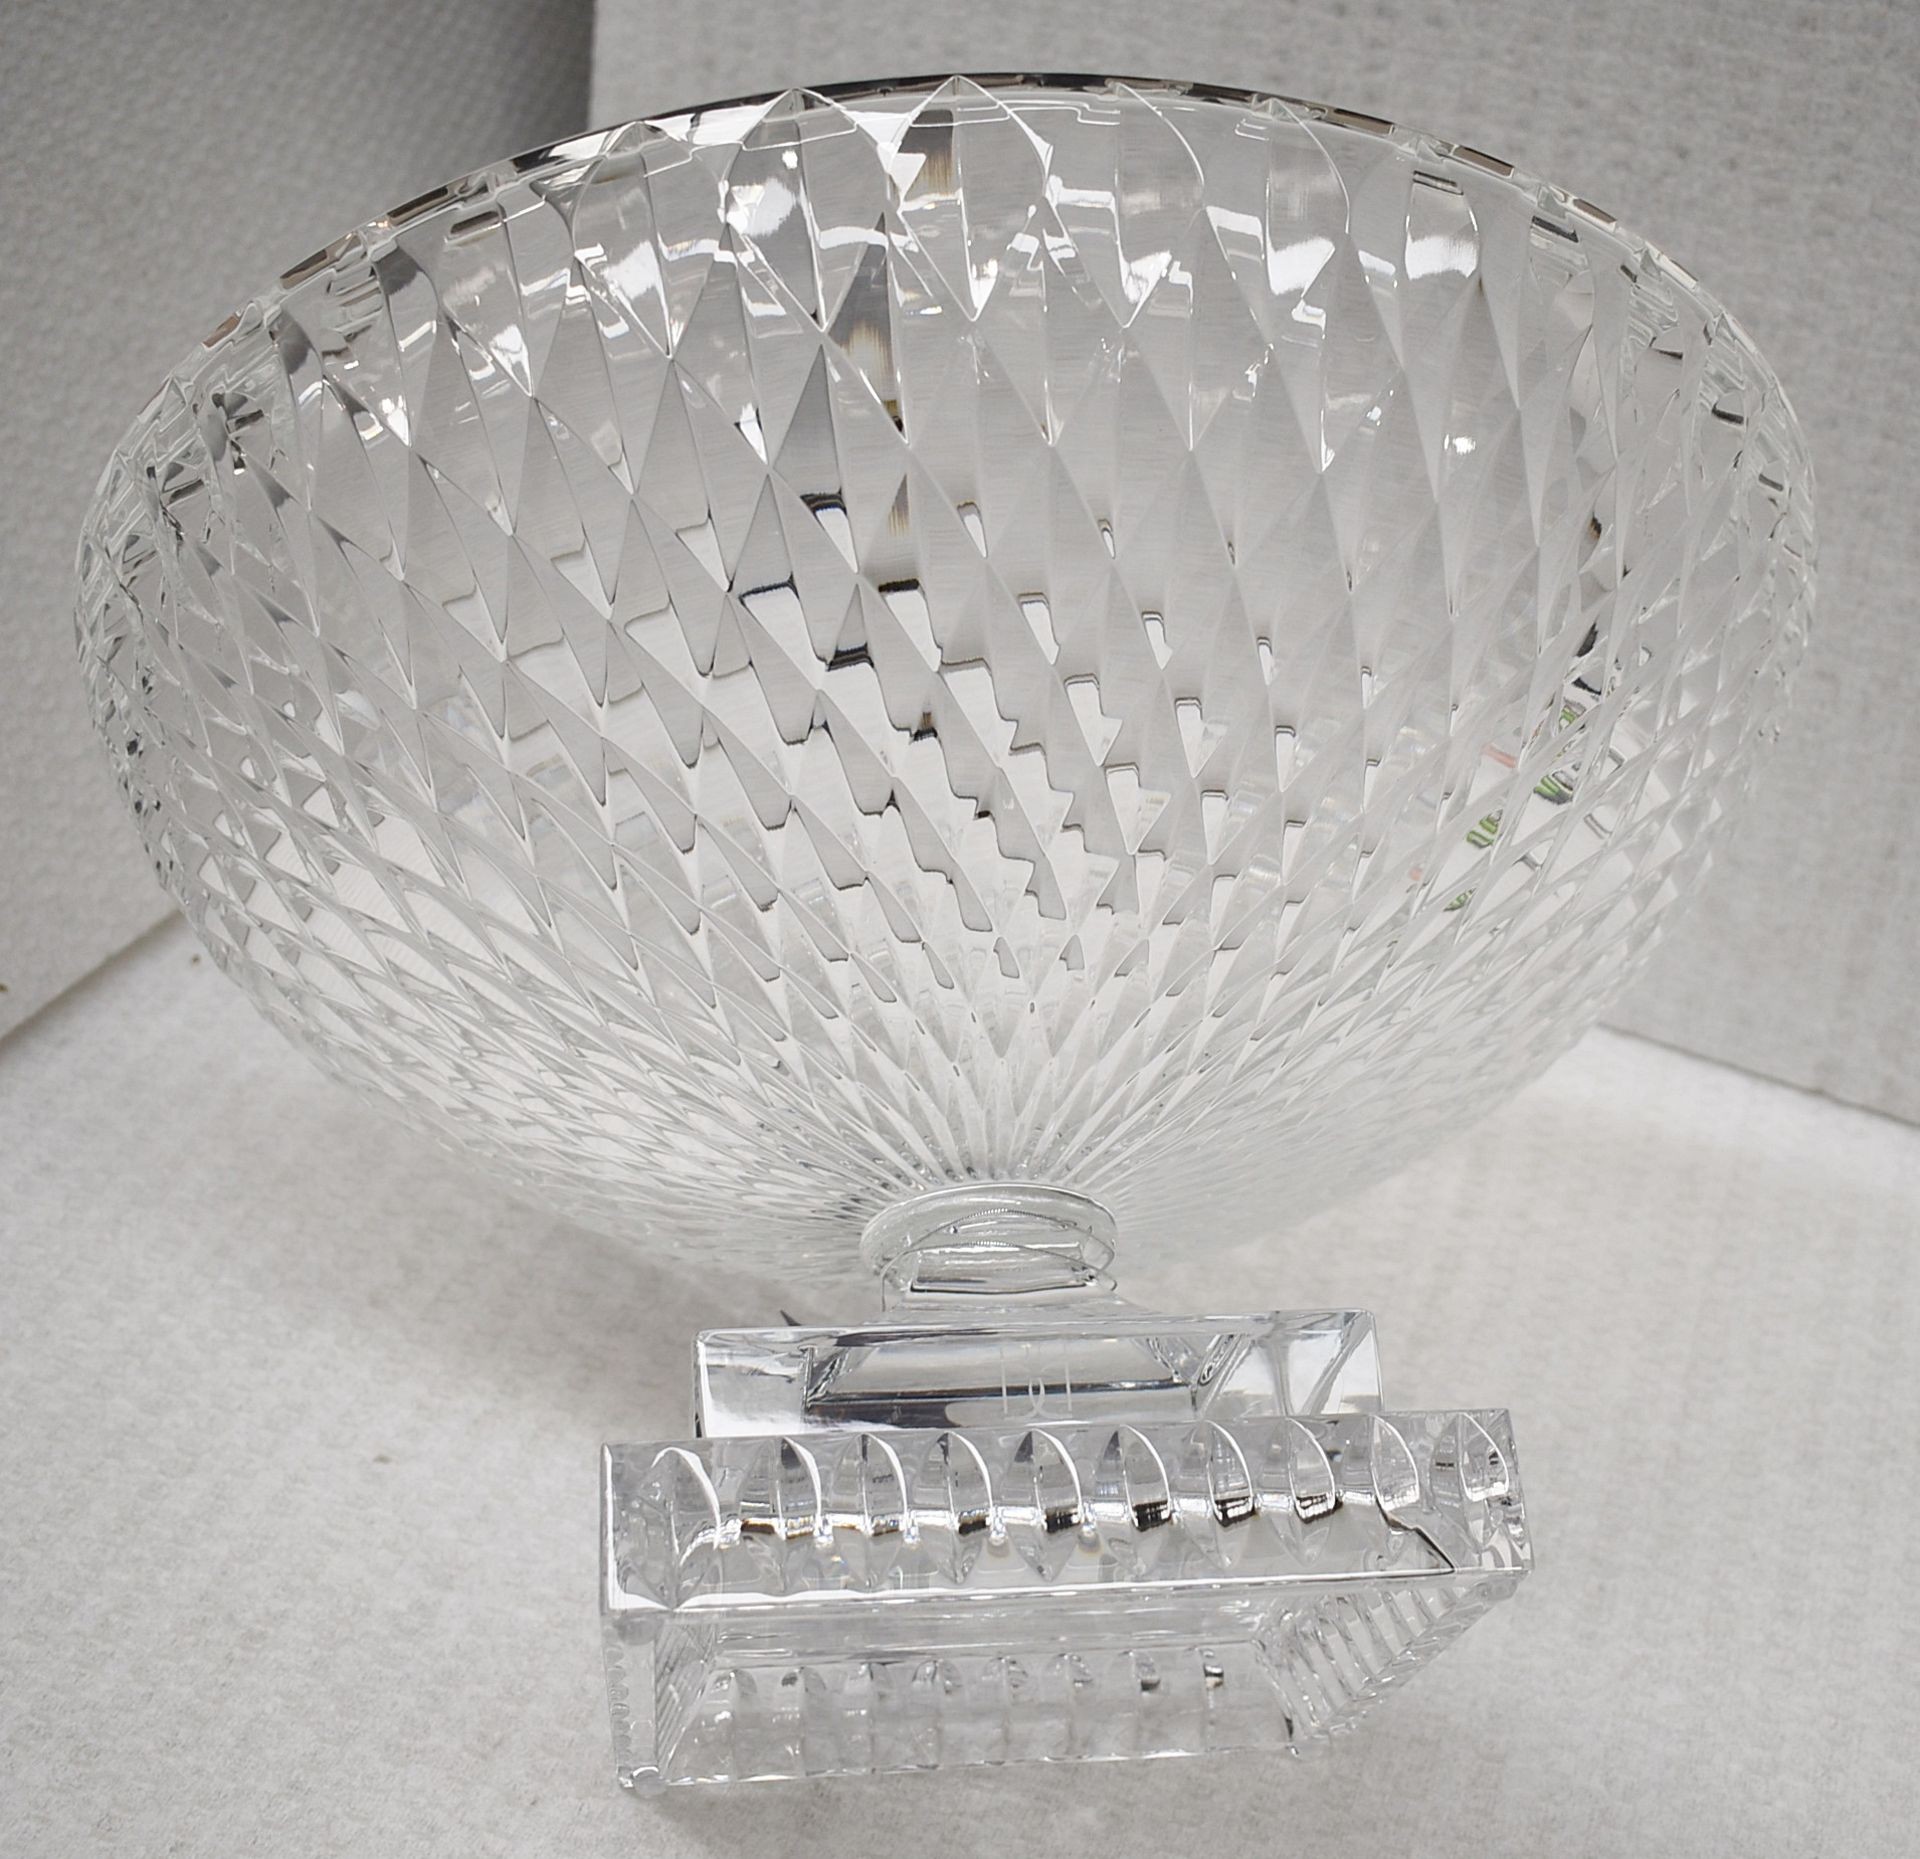 1 x BALDI 'Home Jewels' Italian Hand-crafted Artisan Large Round Clear Crystal Bowl - RRP £1,925 - Image 3 of 4